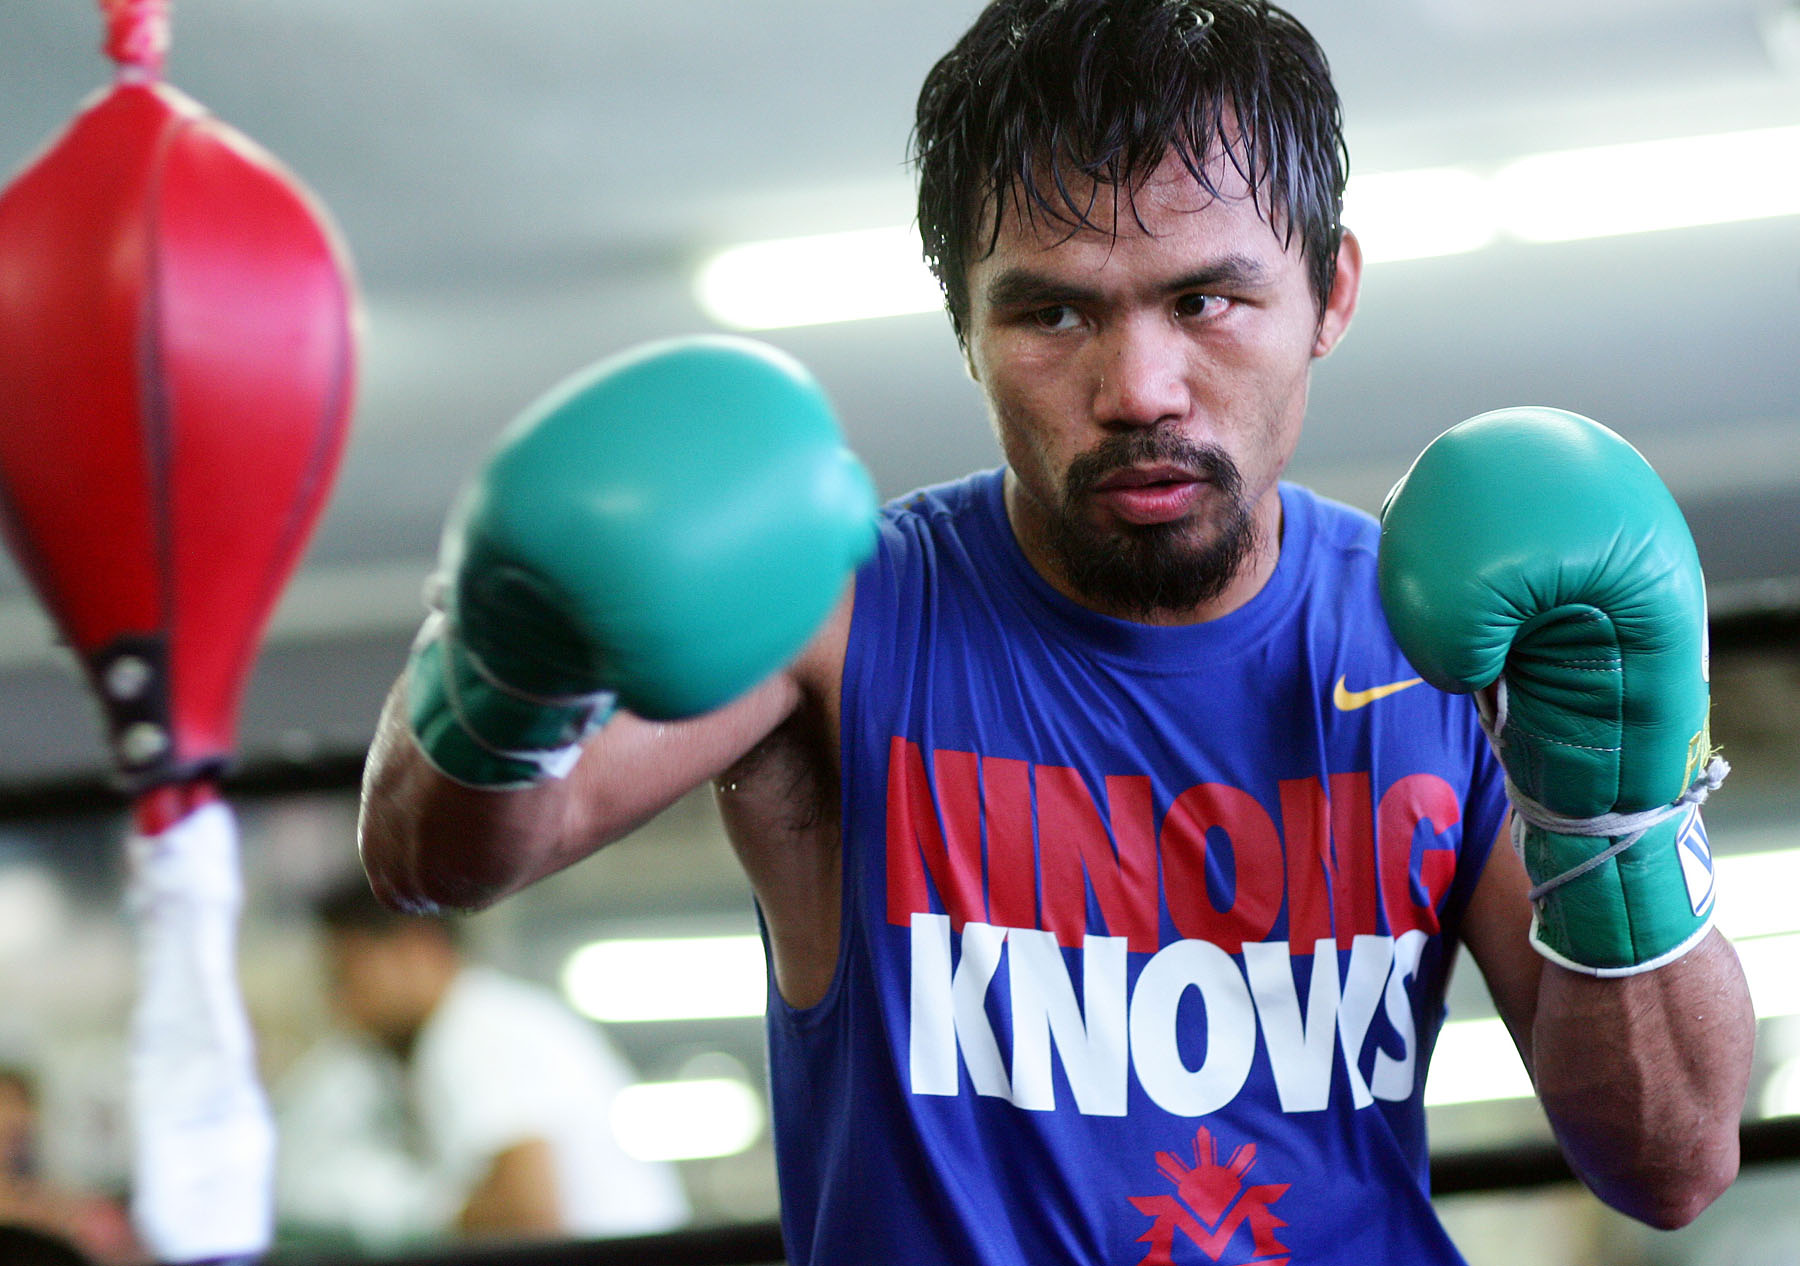 Mayweather vs Pacquiao Fight Set for May 2